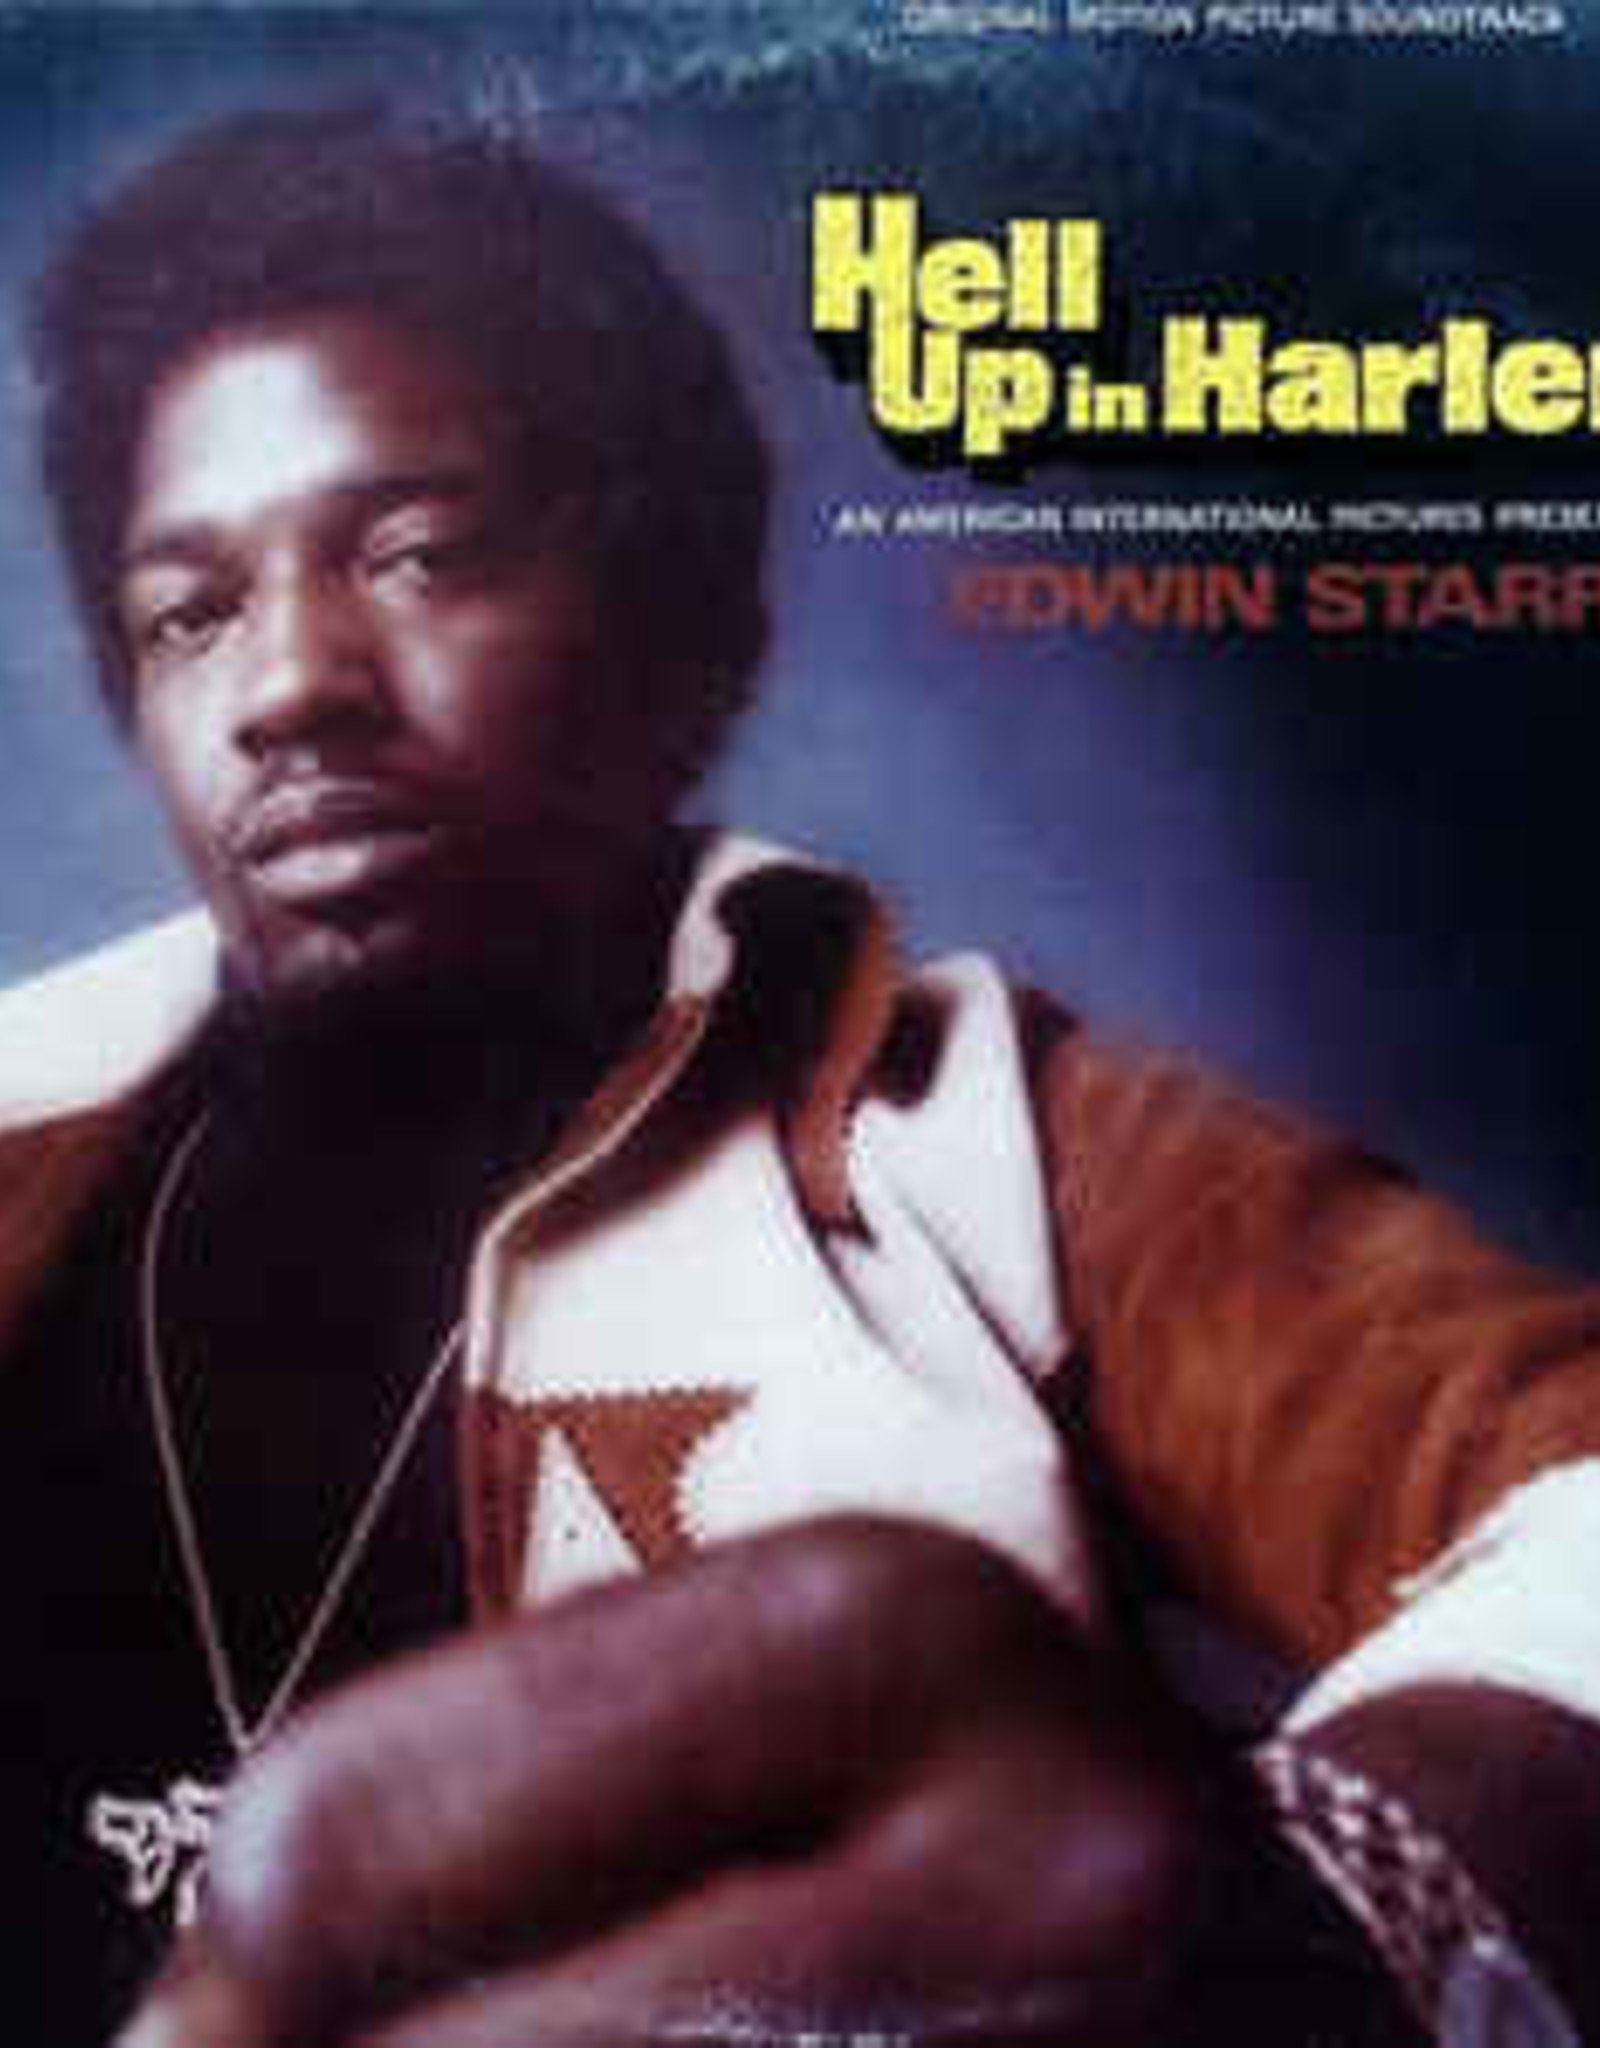 Edwin Star - Hell Up in Harlem